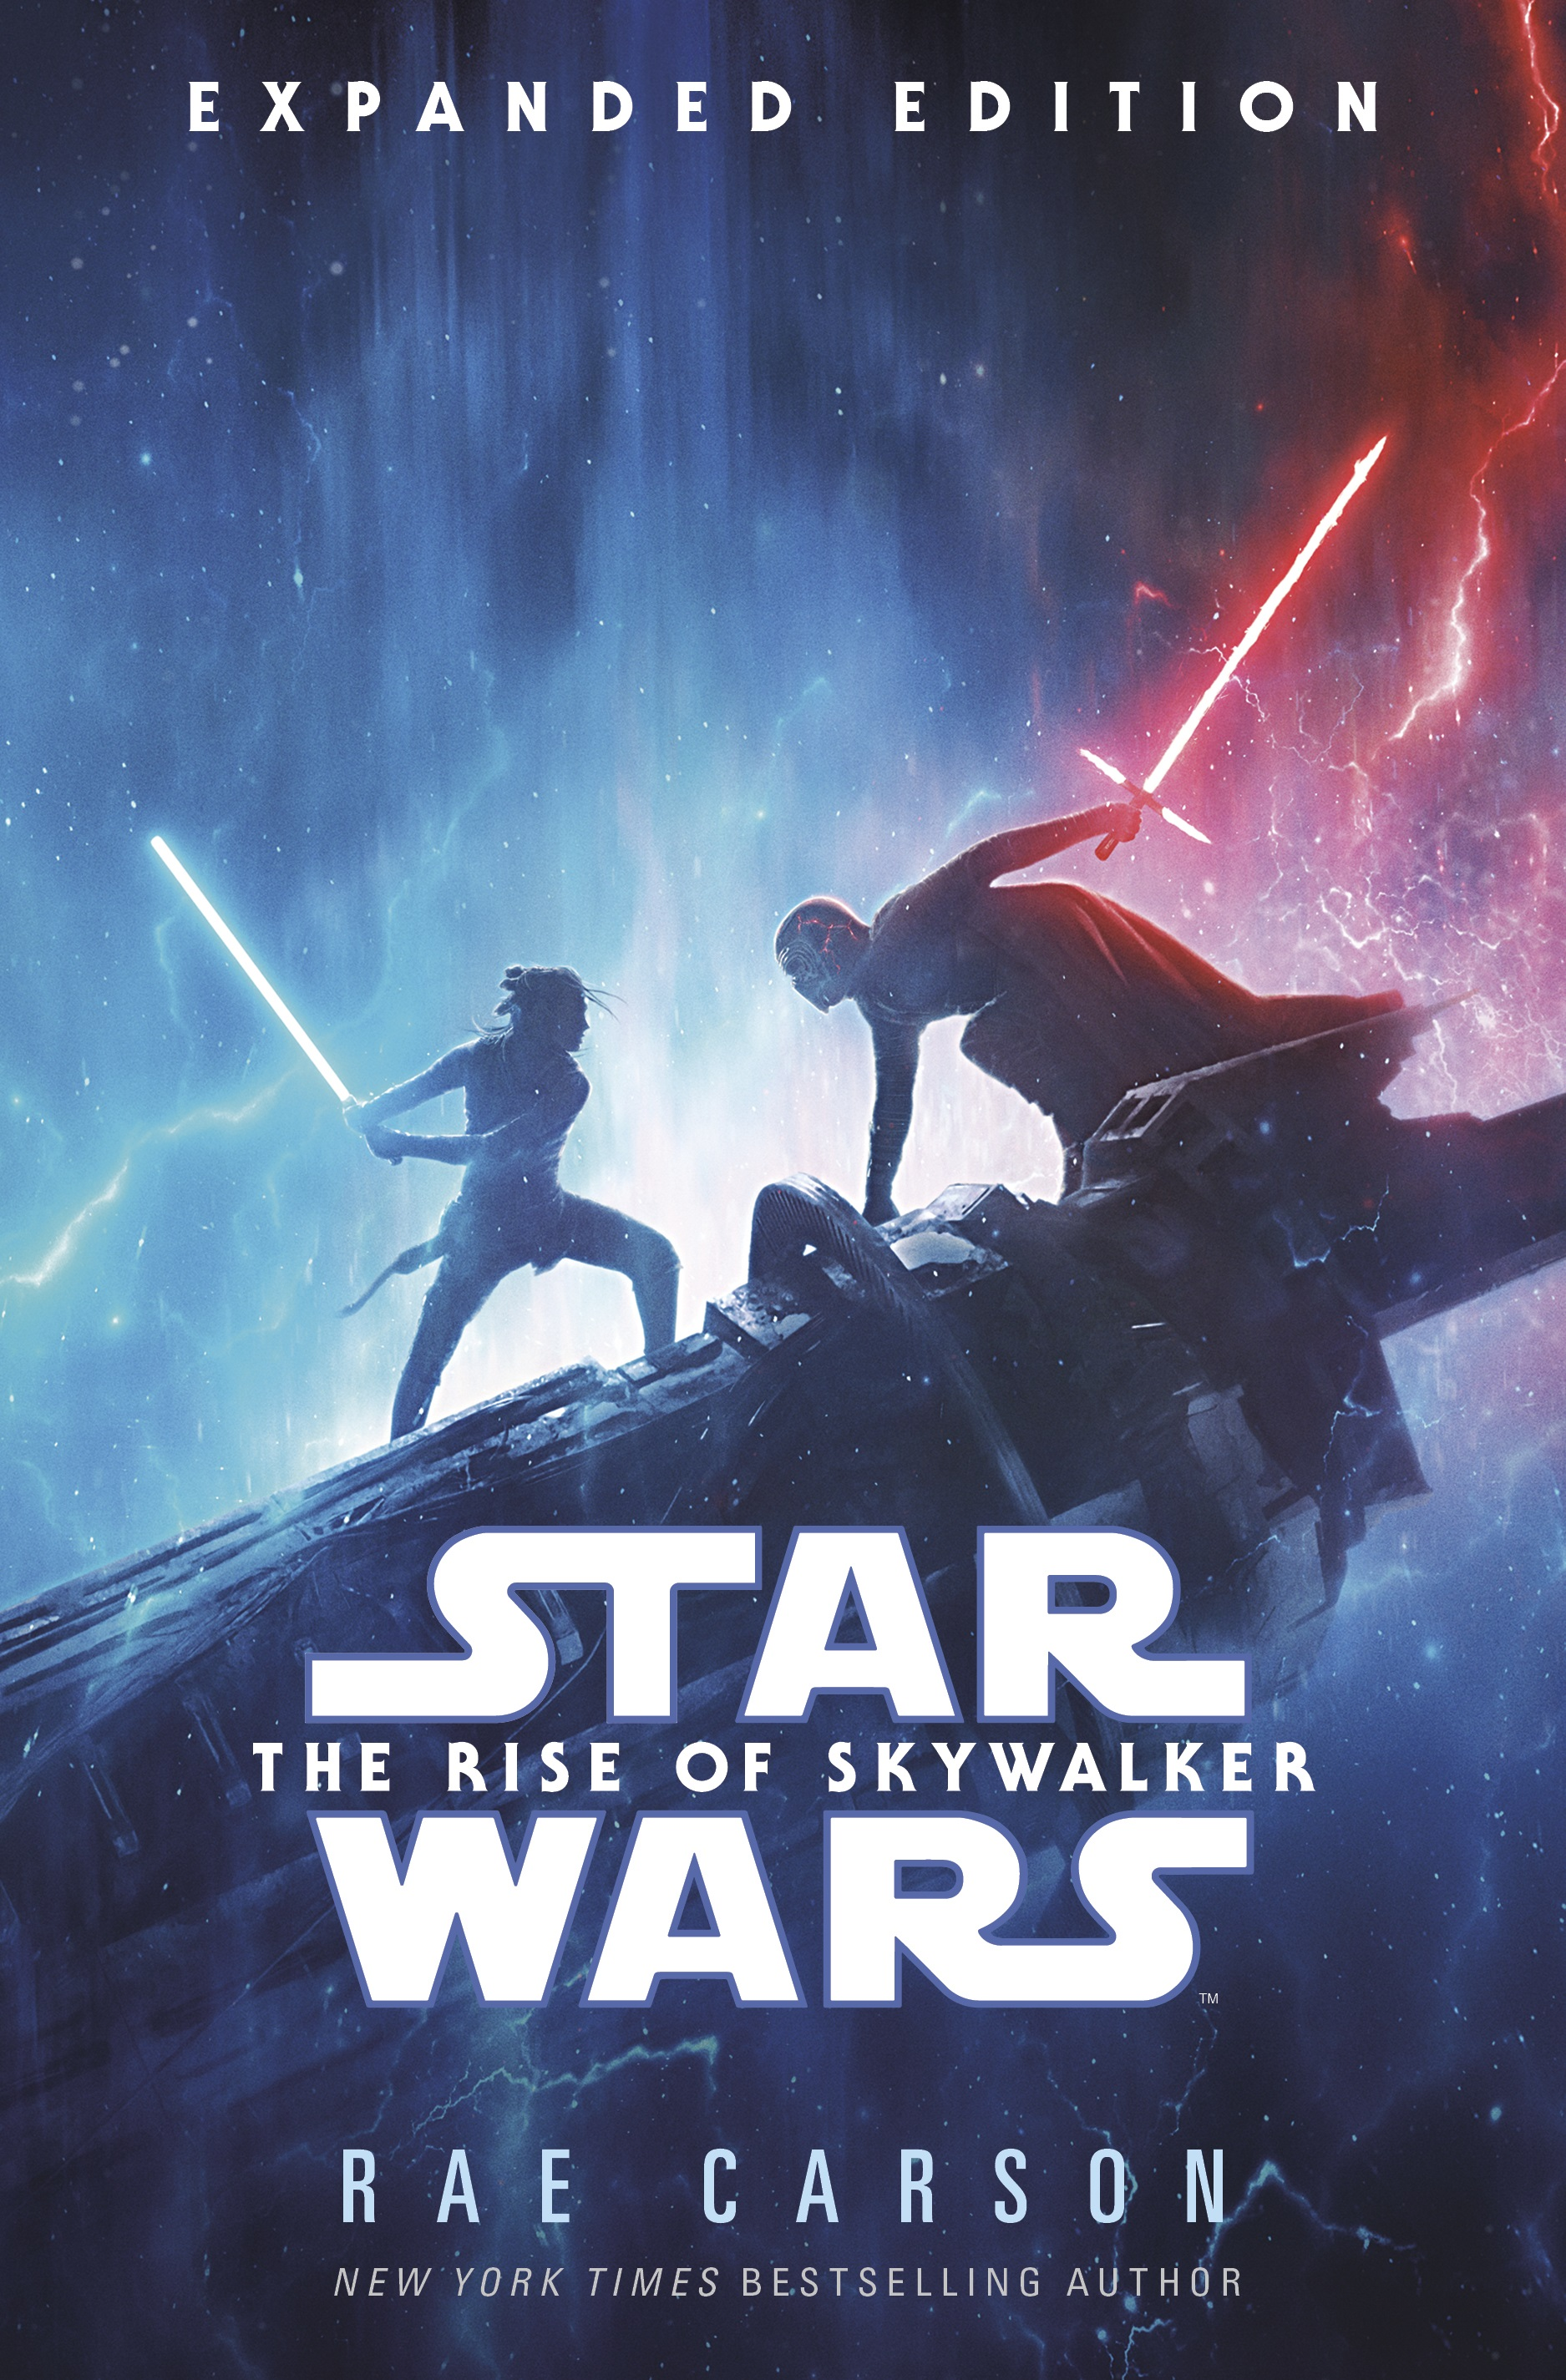 Star Wars Galaxie des aventures ~ The Rise of Skywalker ~ Chewbacca